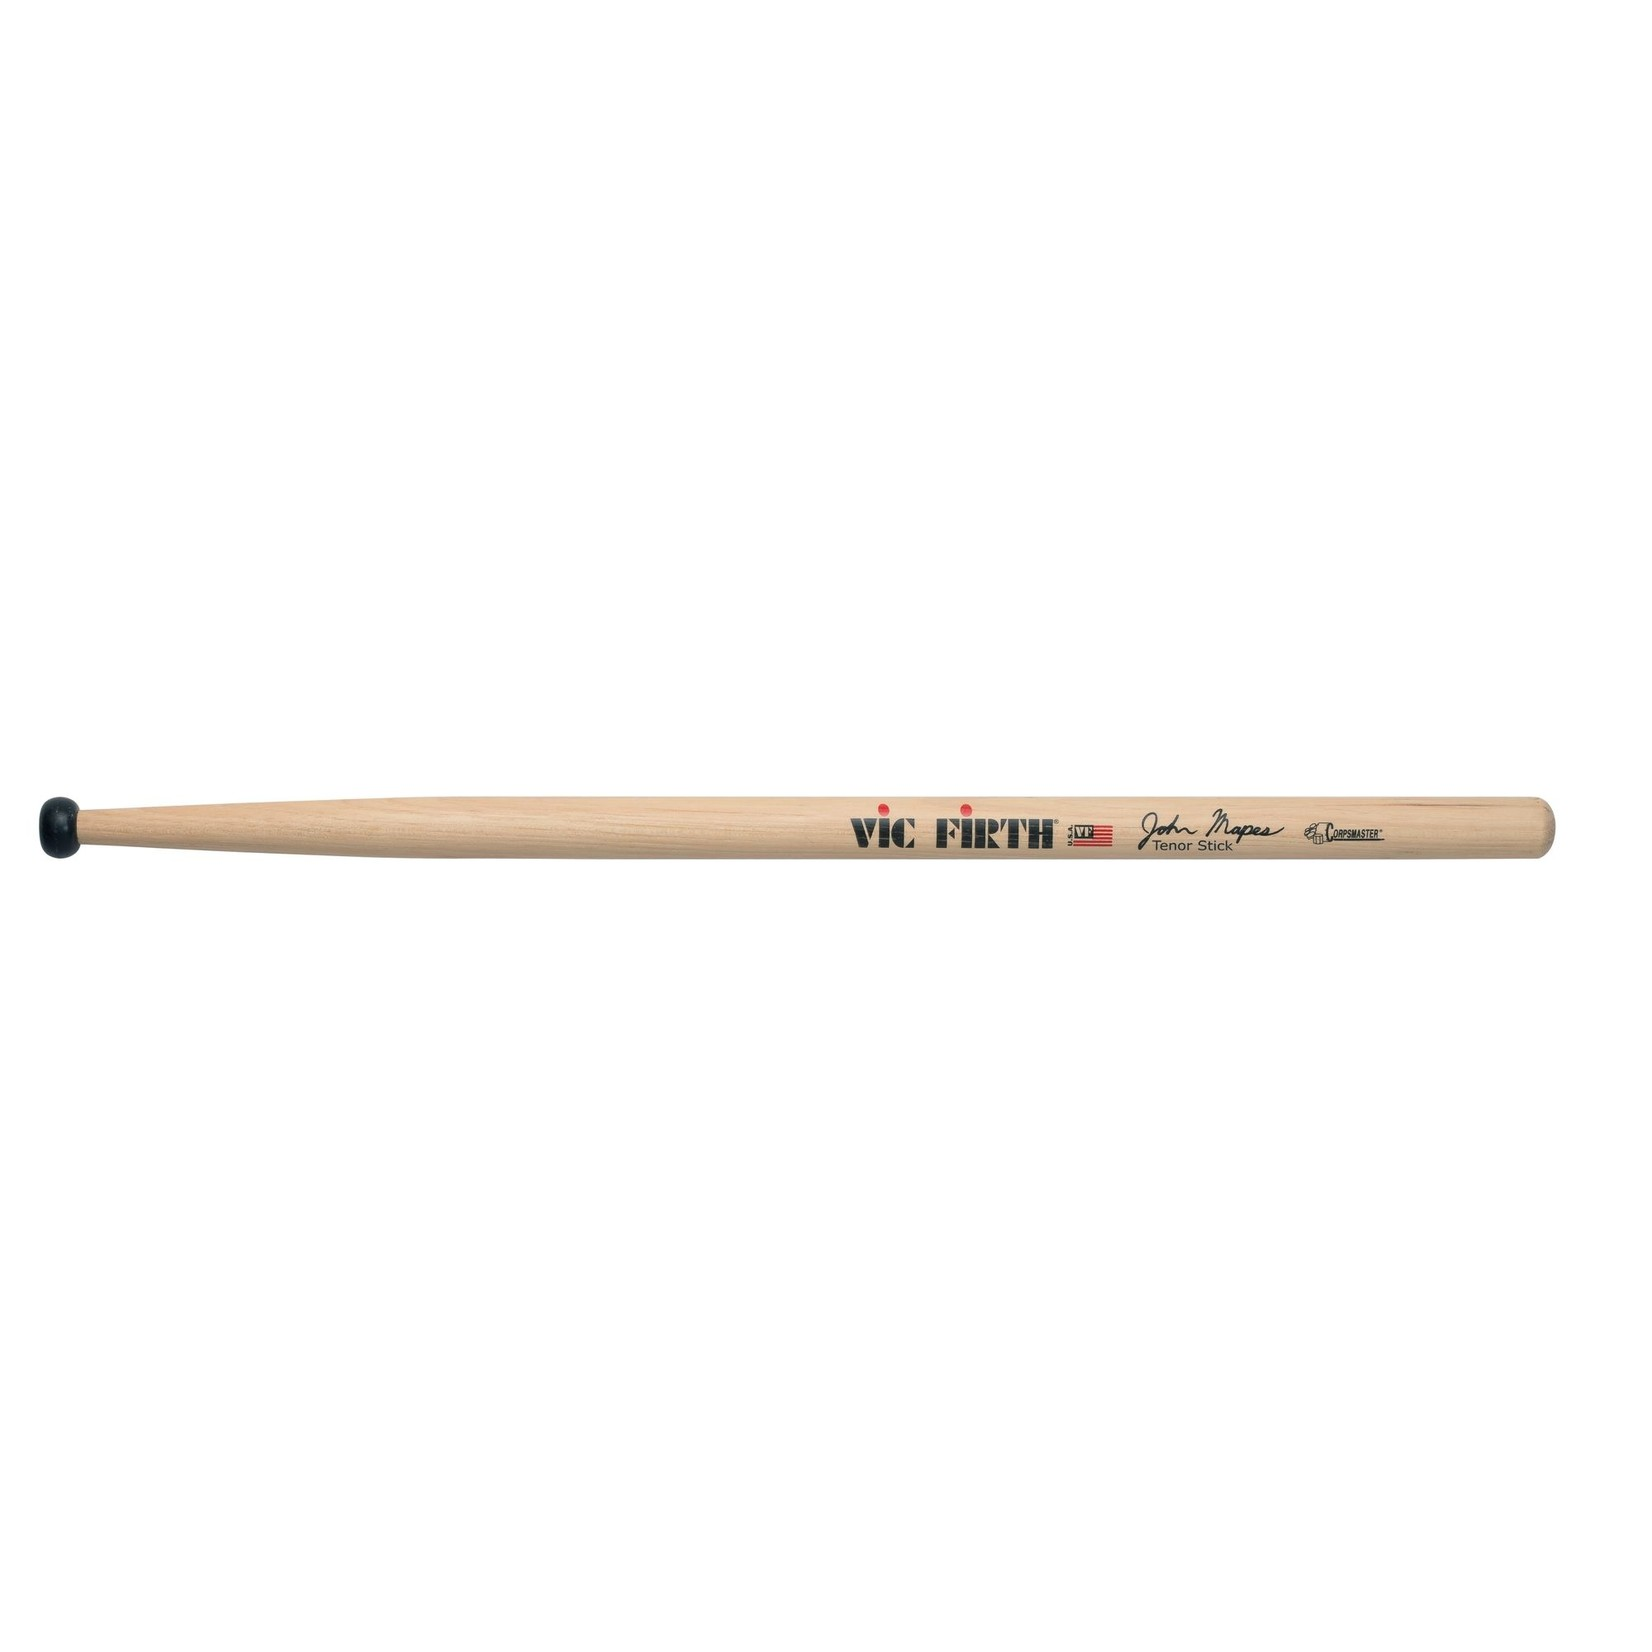 Vic Firth Vic Firth Corpsmaster® Multi-Tenor stick -- John Mapes